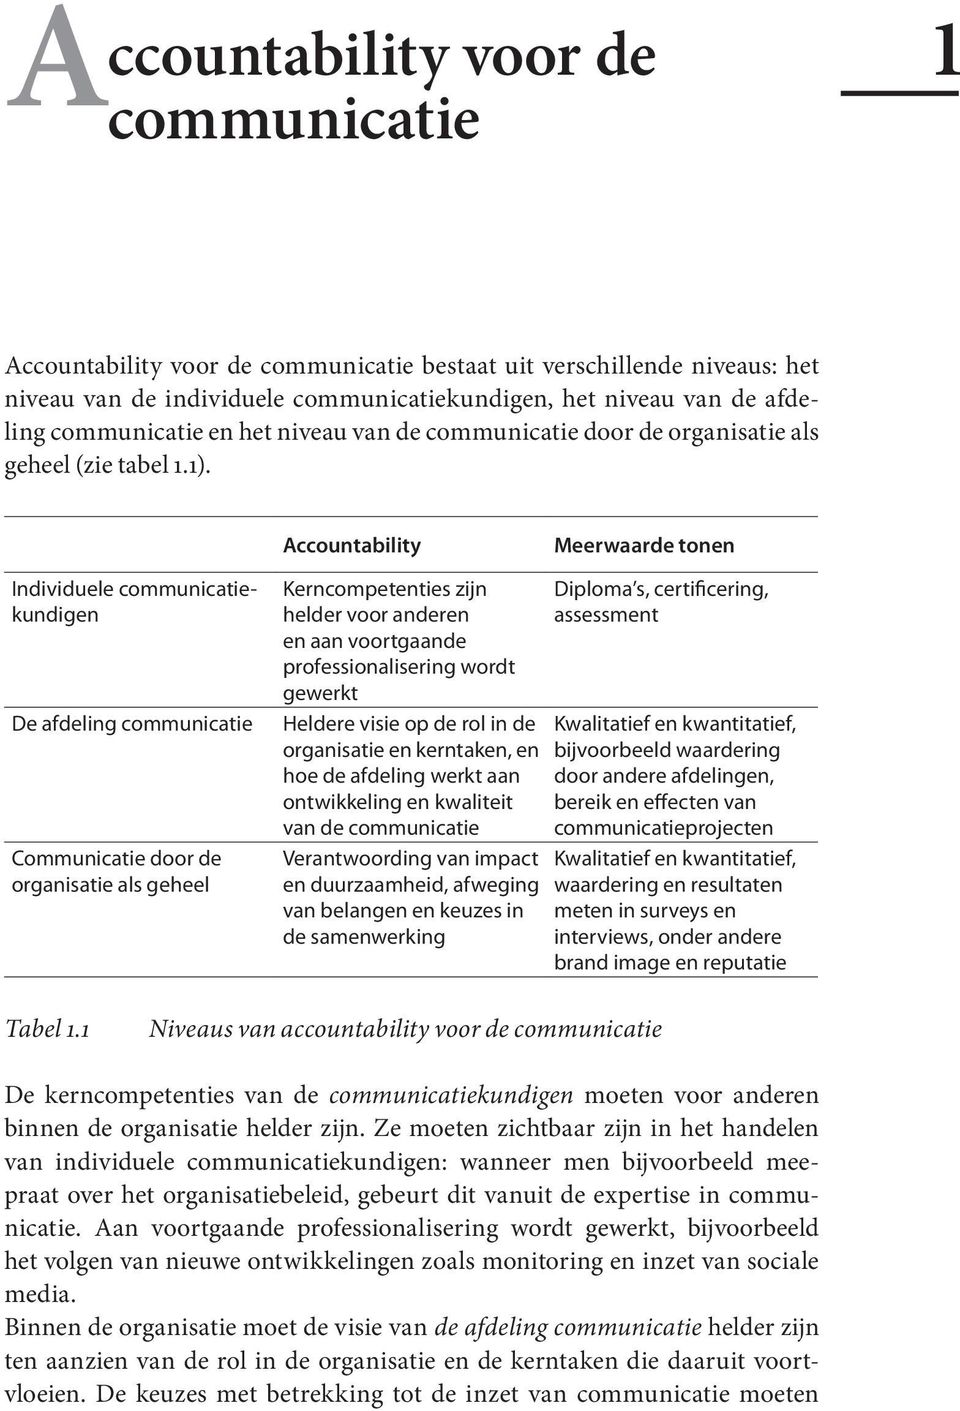 Accountability Meerwaarde tonen Individuele communicatiekundigen De afdeling communicatie Communicatie door de organisatie als geheel Kerncompetenties zijn helder voor anderen en aan voortgaande